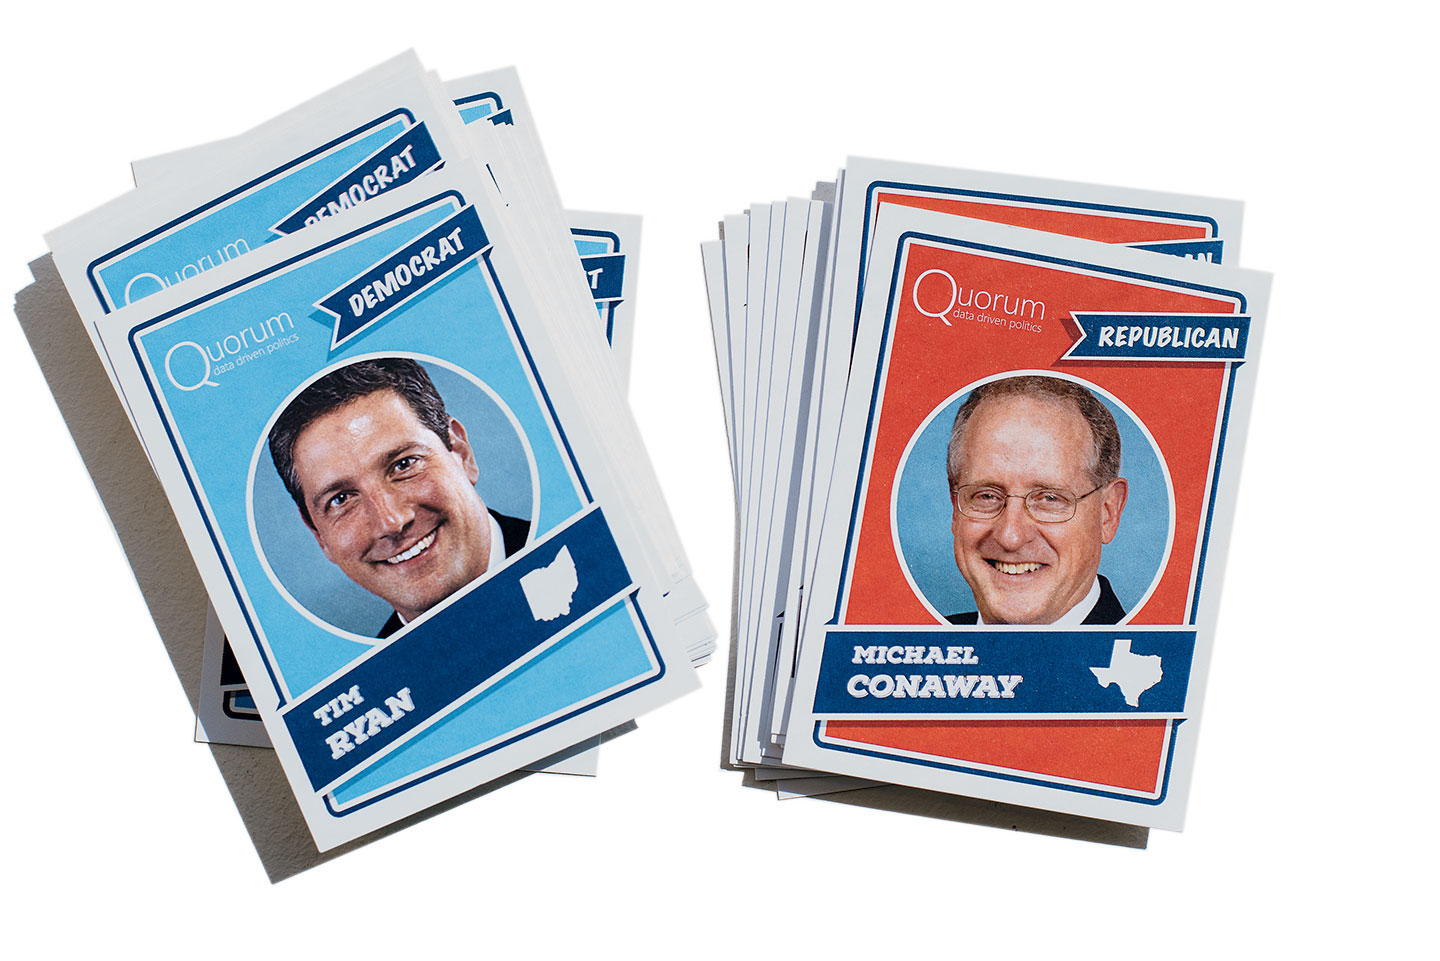 Baseball cards, printed with members' lawmaking stats, that the company gave out at the Congressional Baseball Game.